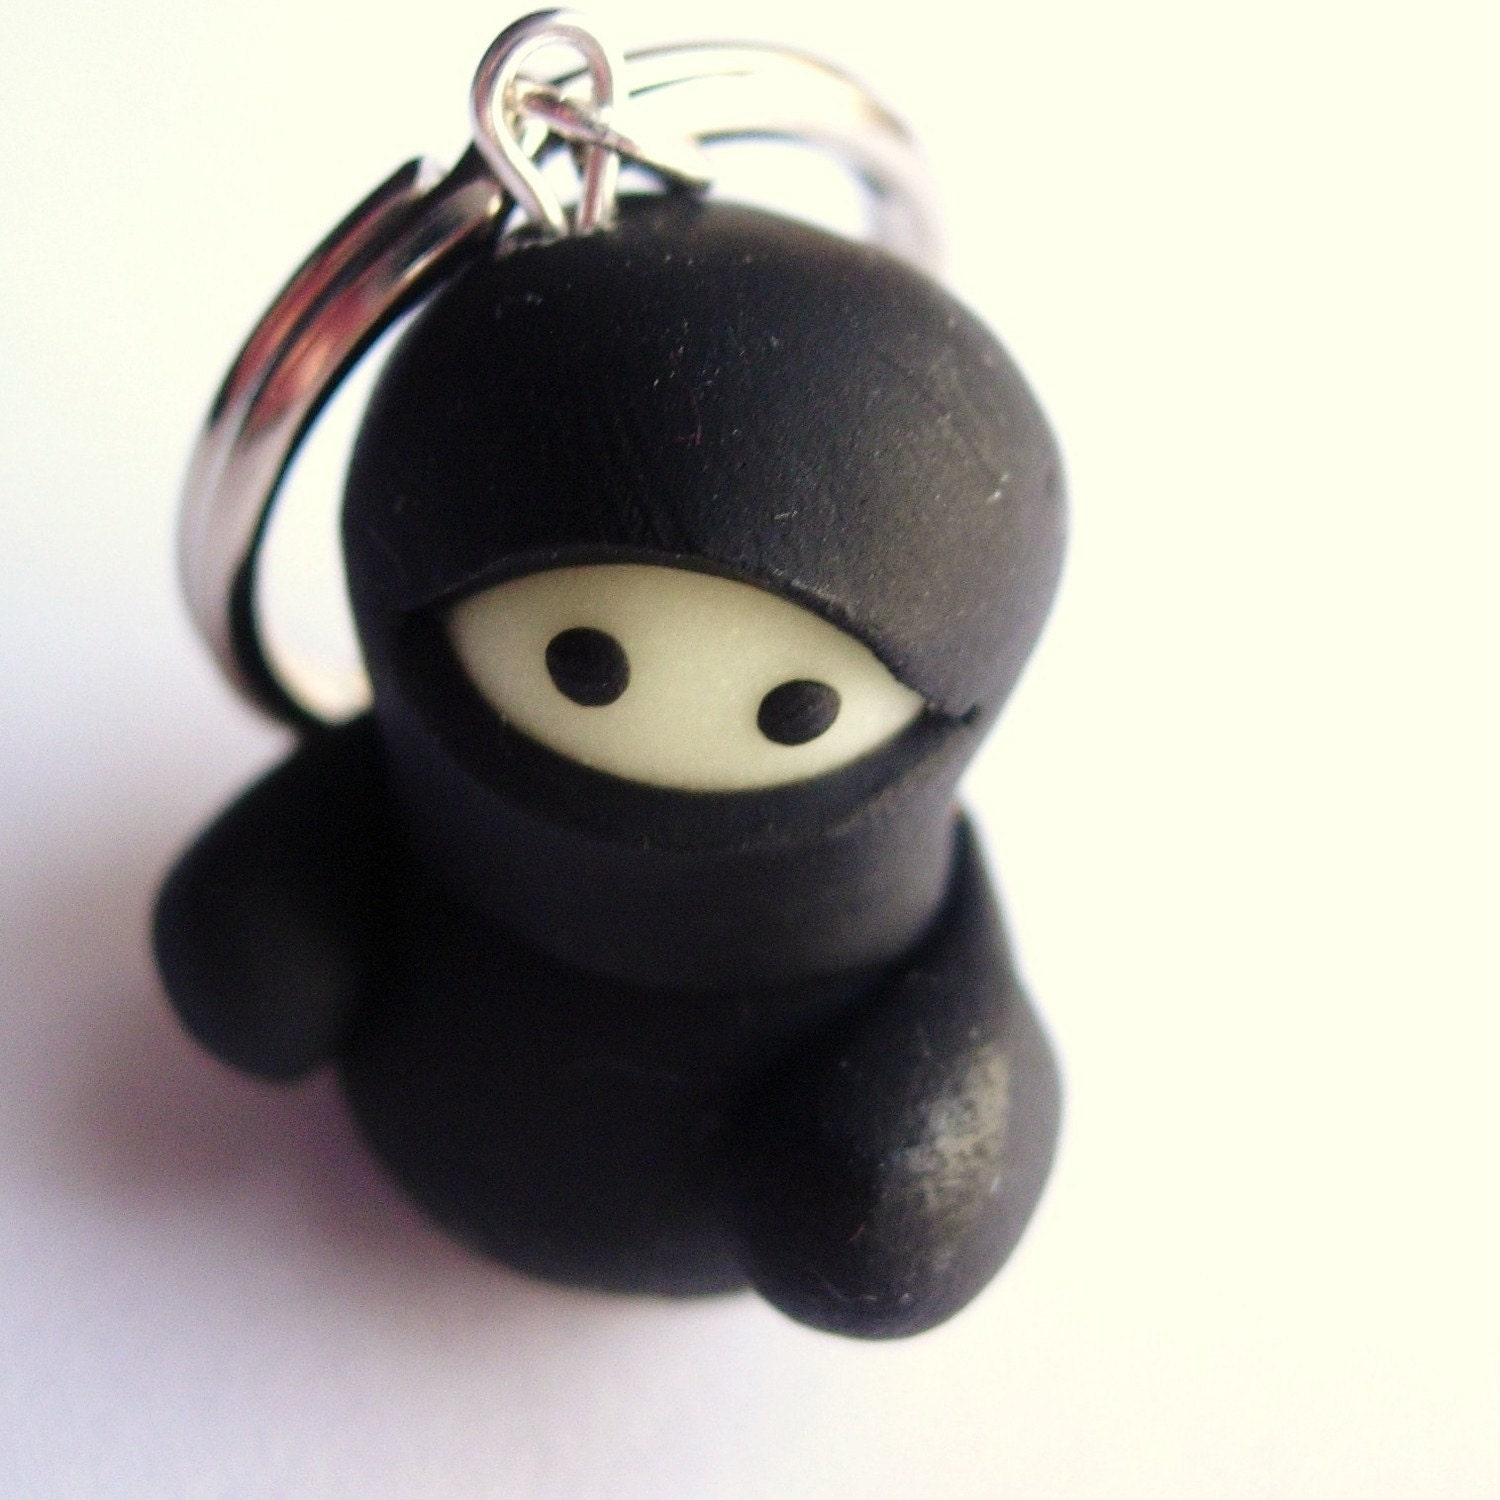 Glow in the Dark Ninja Keyring